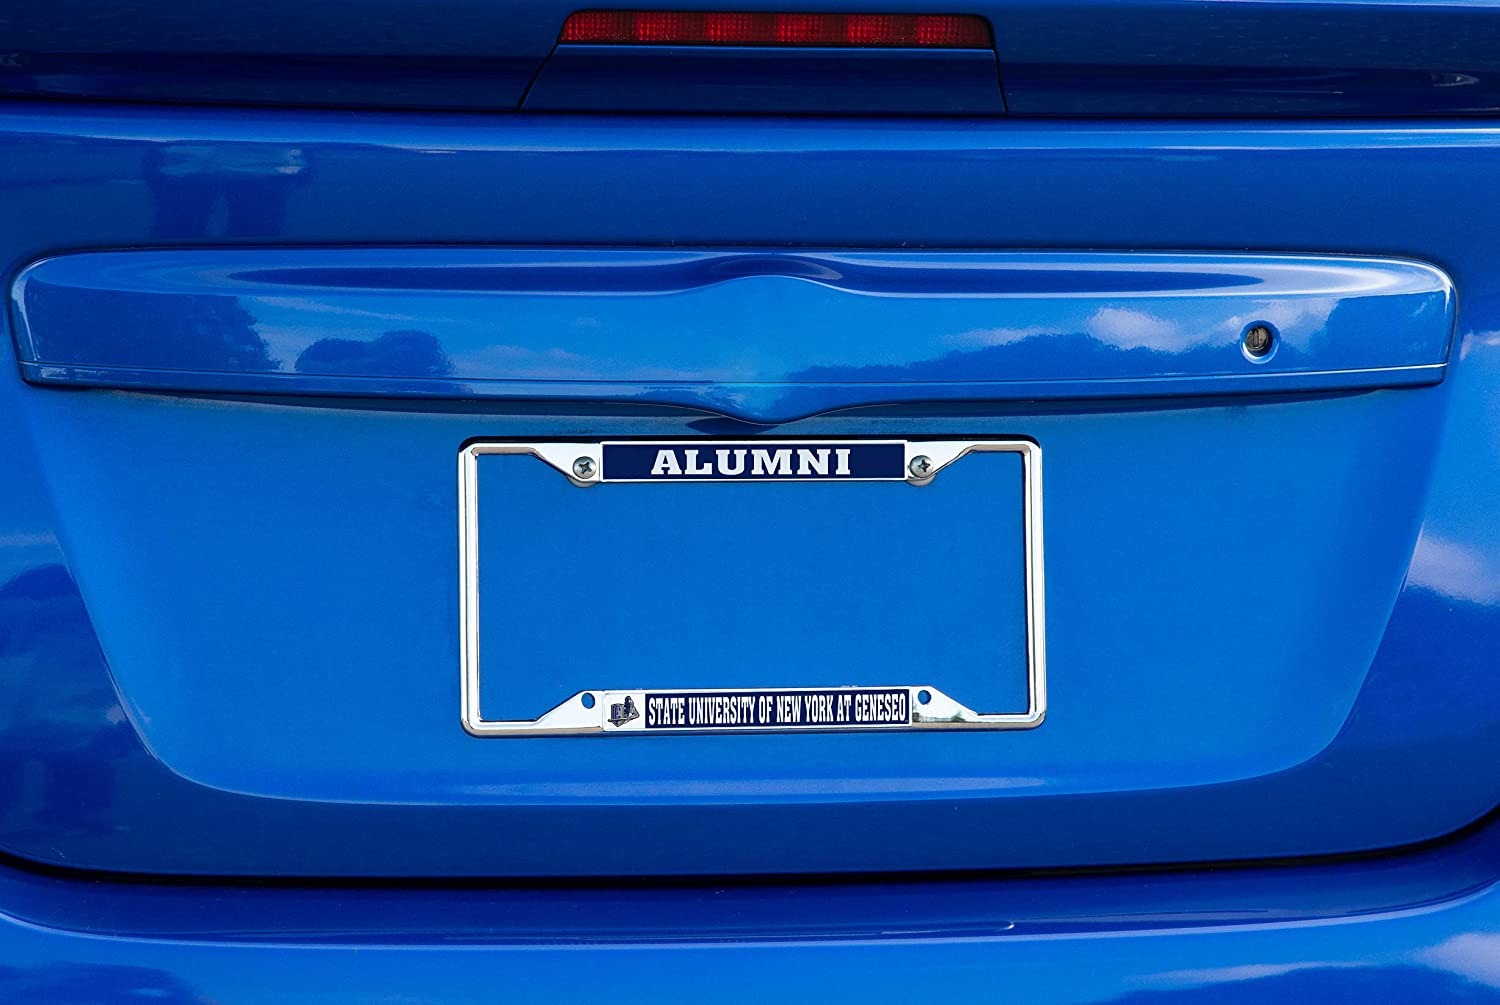 Desert Cactus State University of New York Geneseo SUNY Knights NCAA Metal License Plate Frame for Front or Back of Car Officially Licensed Alumni